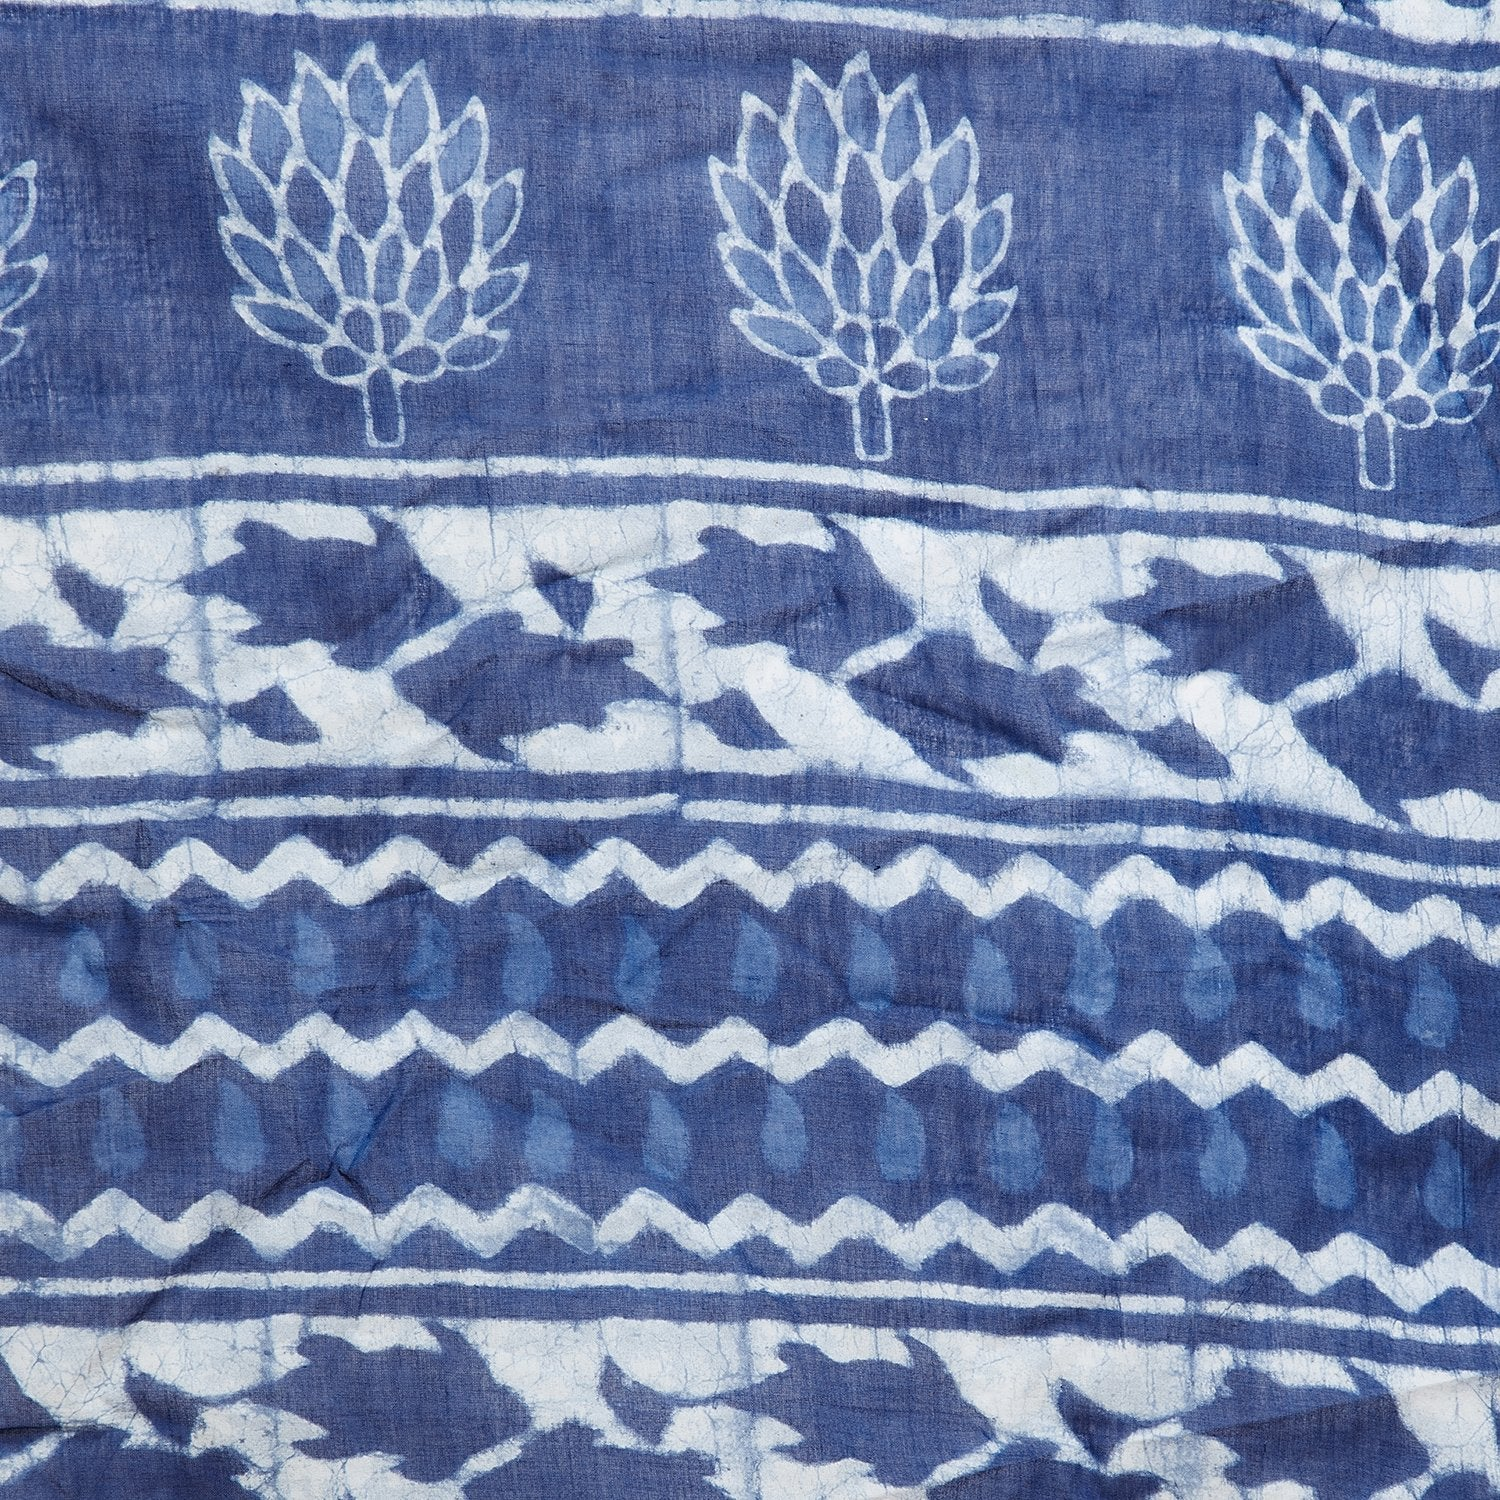 Blue & White Indigo Hand Block Print Handcrafted Cotton Saree-Saree-Kalakari India-BAPASA0072-Cotton, Dabu, Geographical Indication, Hand Blocks, Hand Crafted, Heritage Prints, Indigo, Natural Dyes, Sarees, Sustainable Fabrics-[Linen,Ethnic,wear,Fashionista,Handloom,Handicraft,Indigo,blockprint,block,print,Cotton,Chanderi,Blue, latest,classy,party,bollywood,trendy,summer,style,traditional,formal,elegant,unique,style,hand,block,print, dabu,booti,gift,present,glamorous,affordable,collectible,Sari,